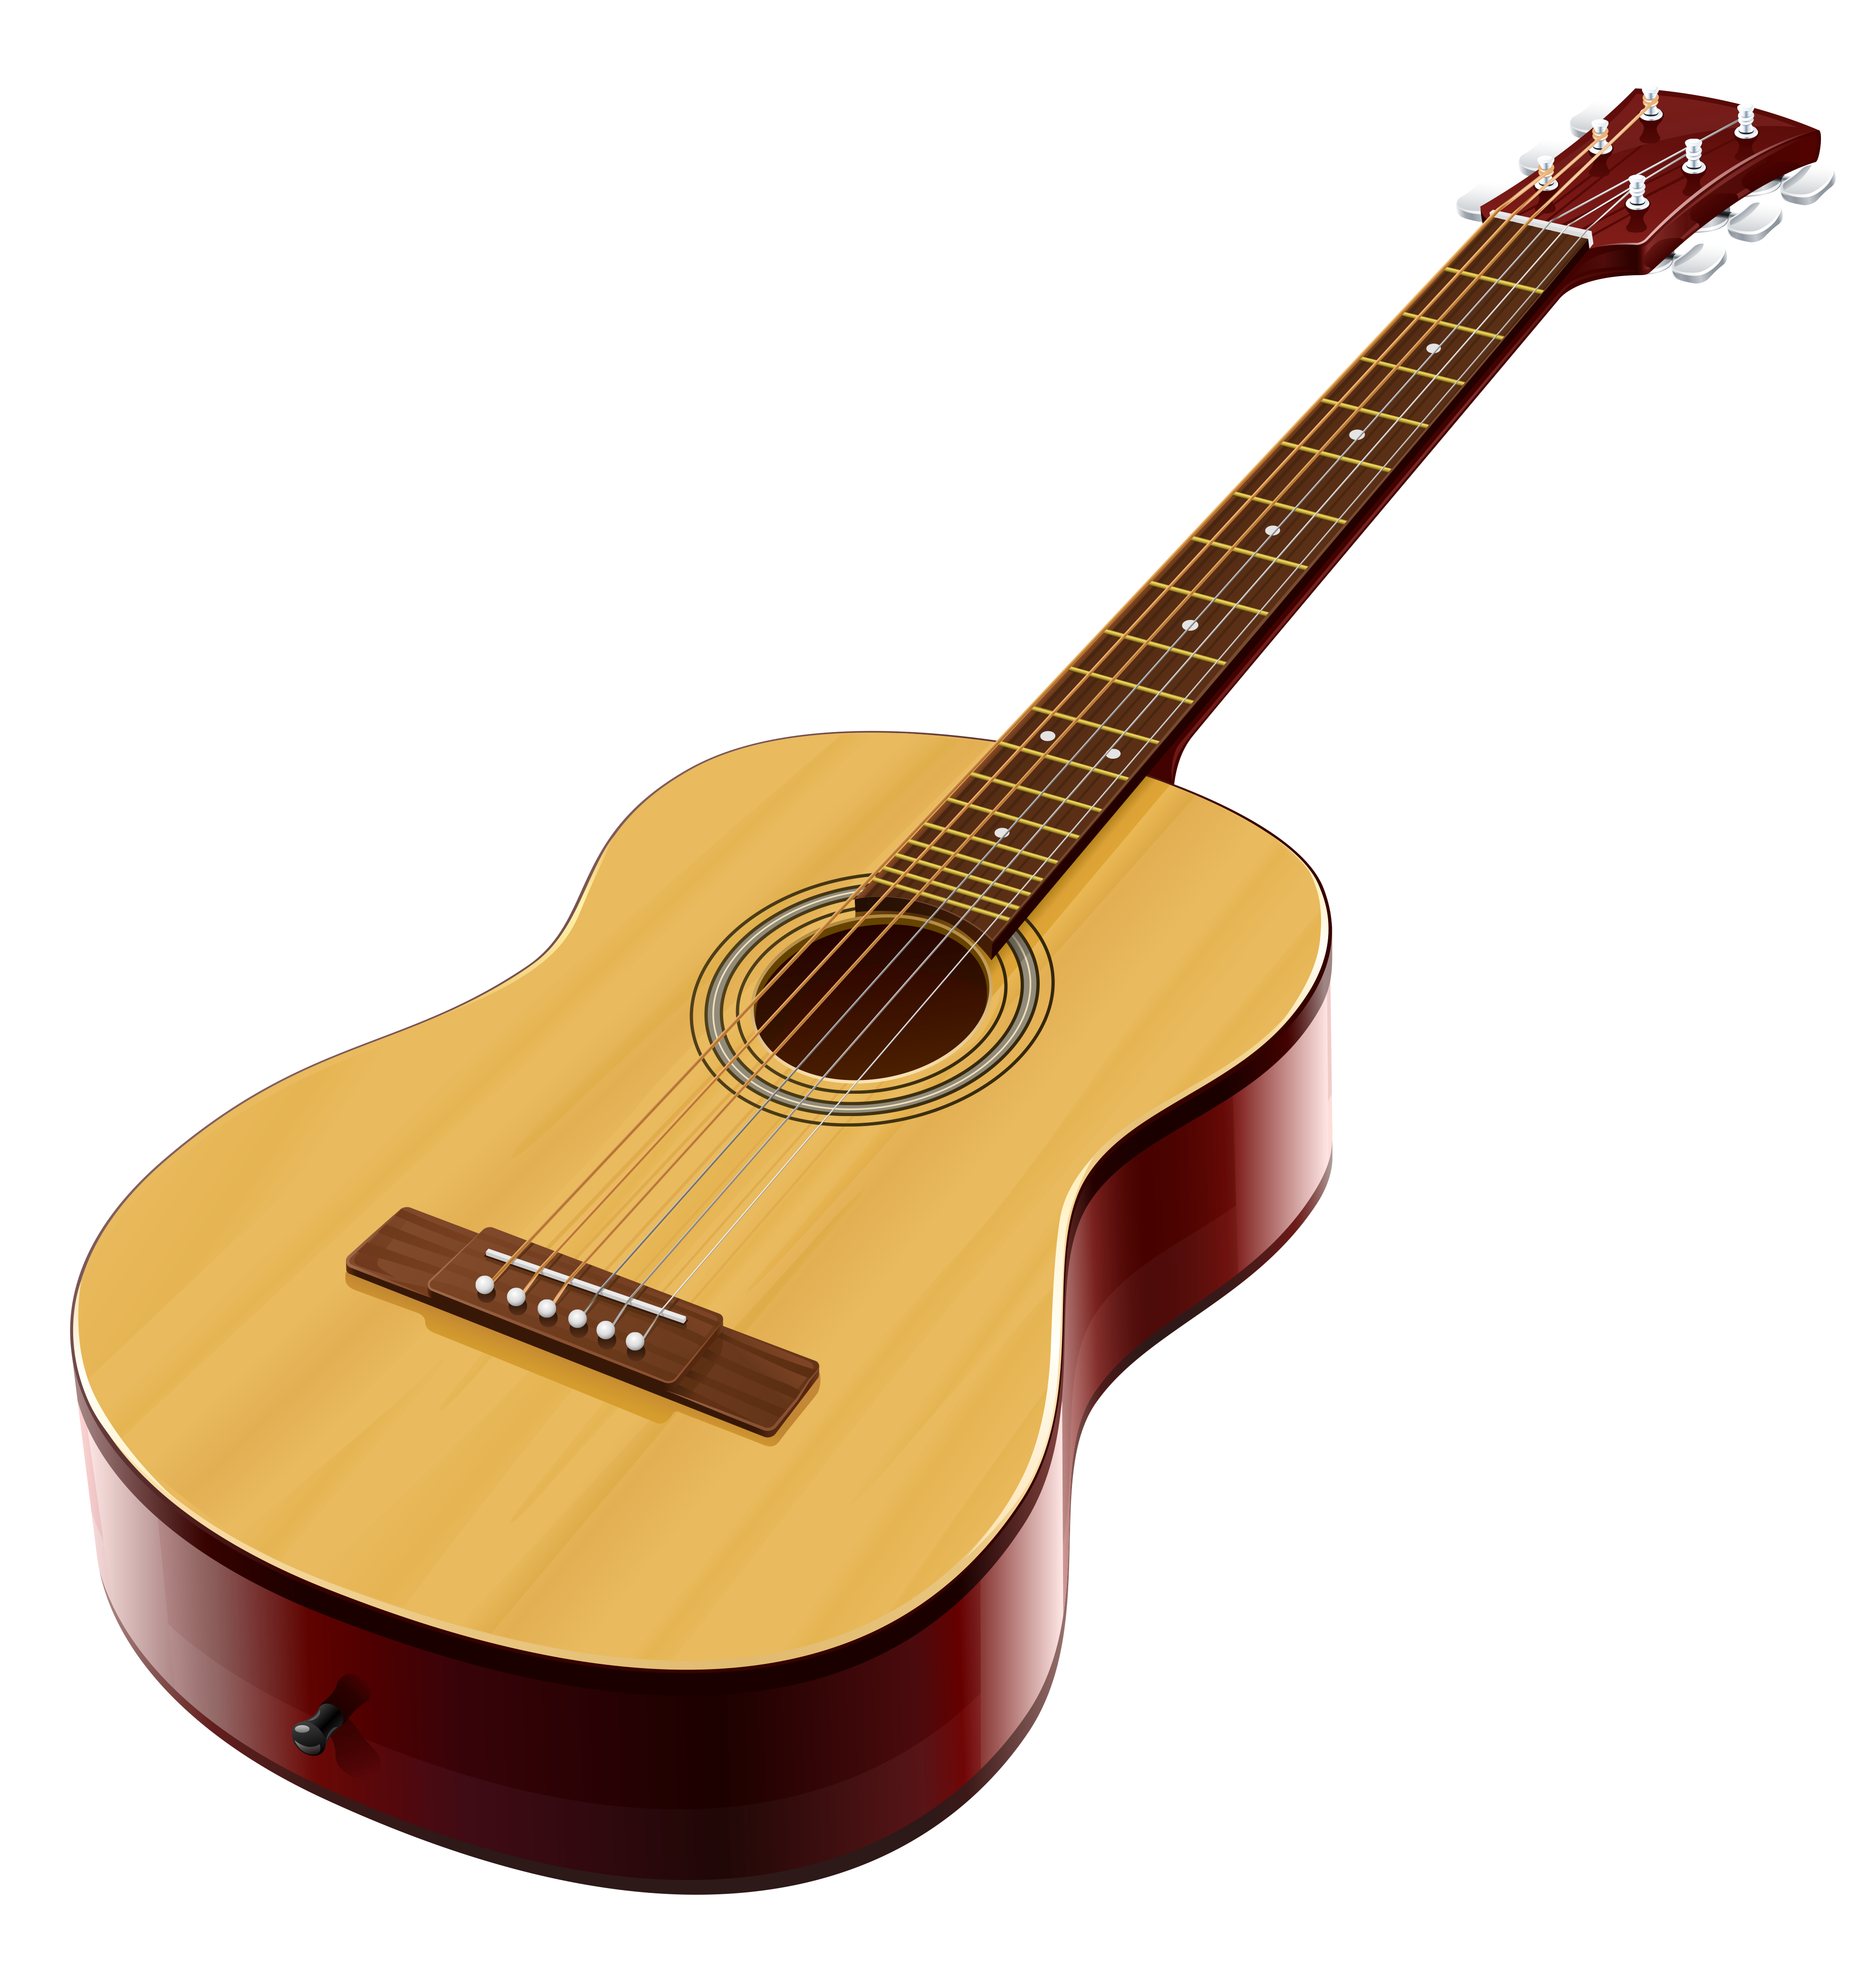 picture download Clip art birthday frame. Acoustic clipart classical guitar